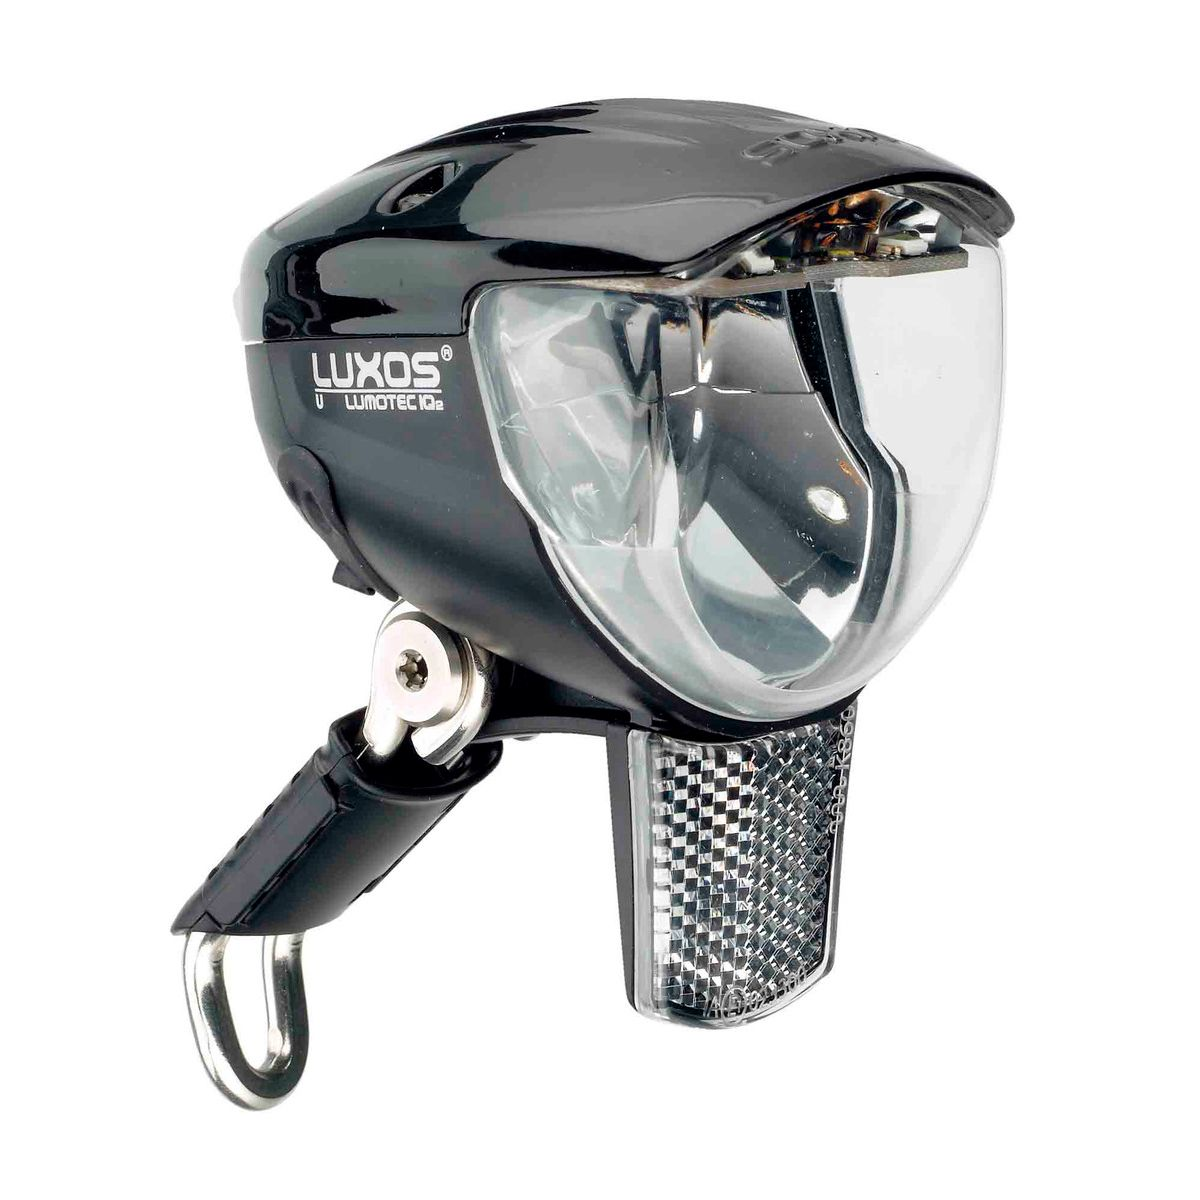 Lumotec IQ2 Luxos U senso plus headlight with USB connection